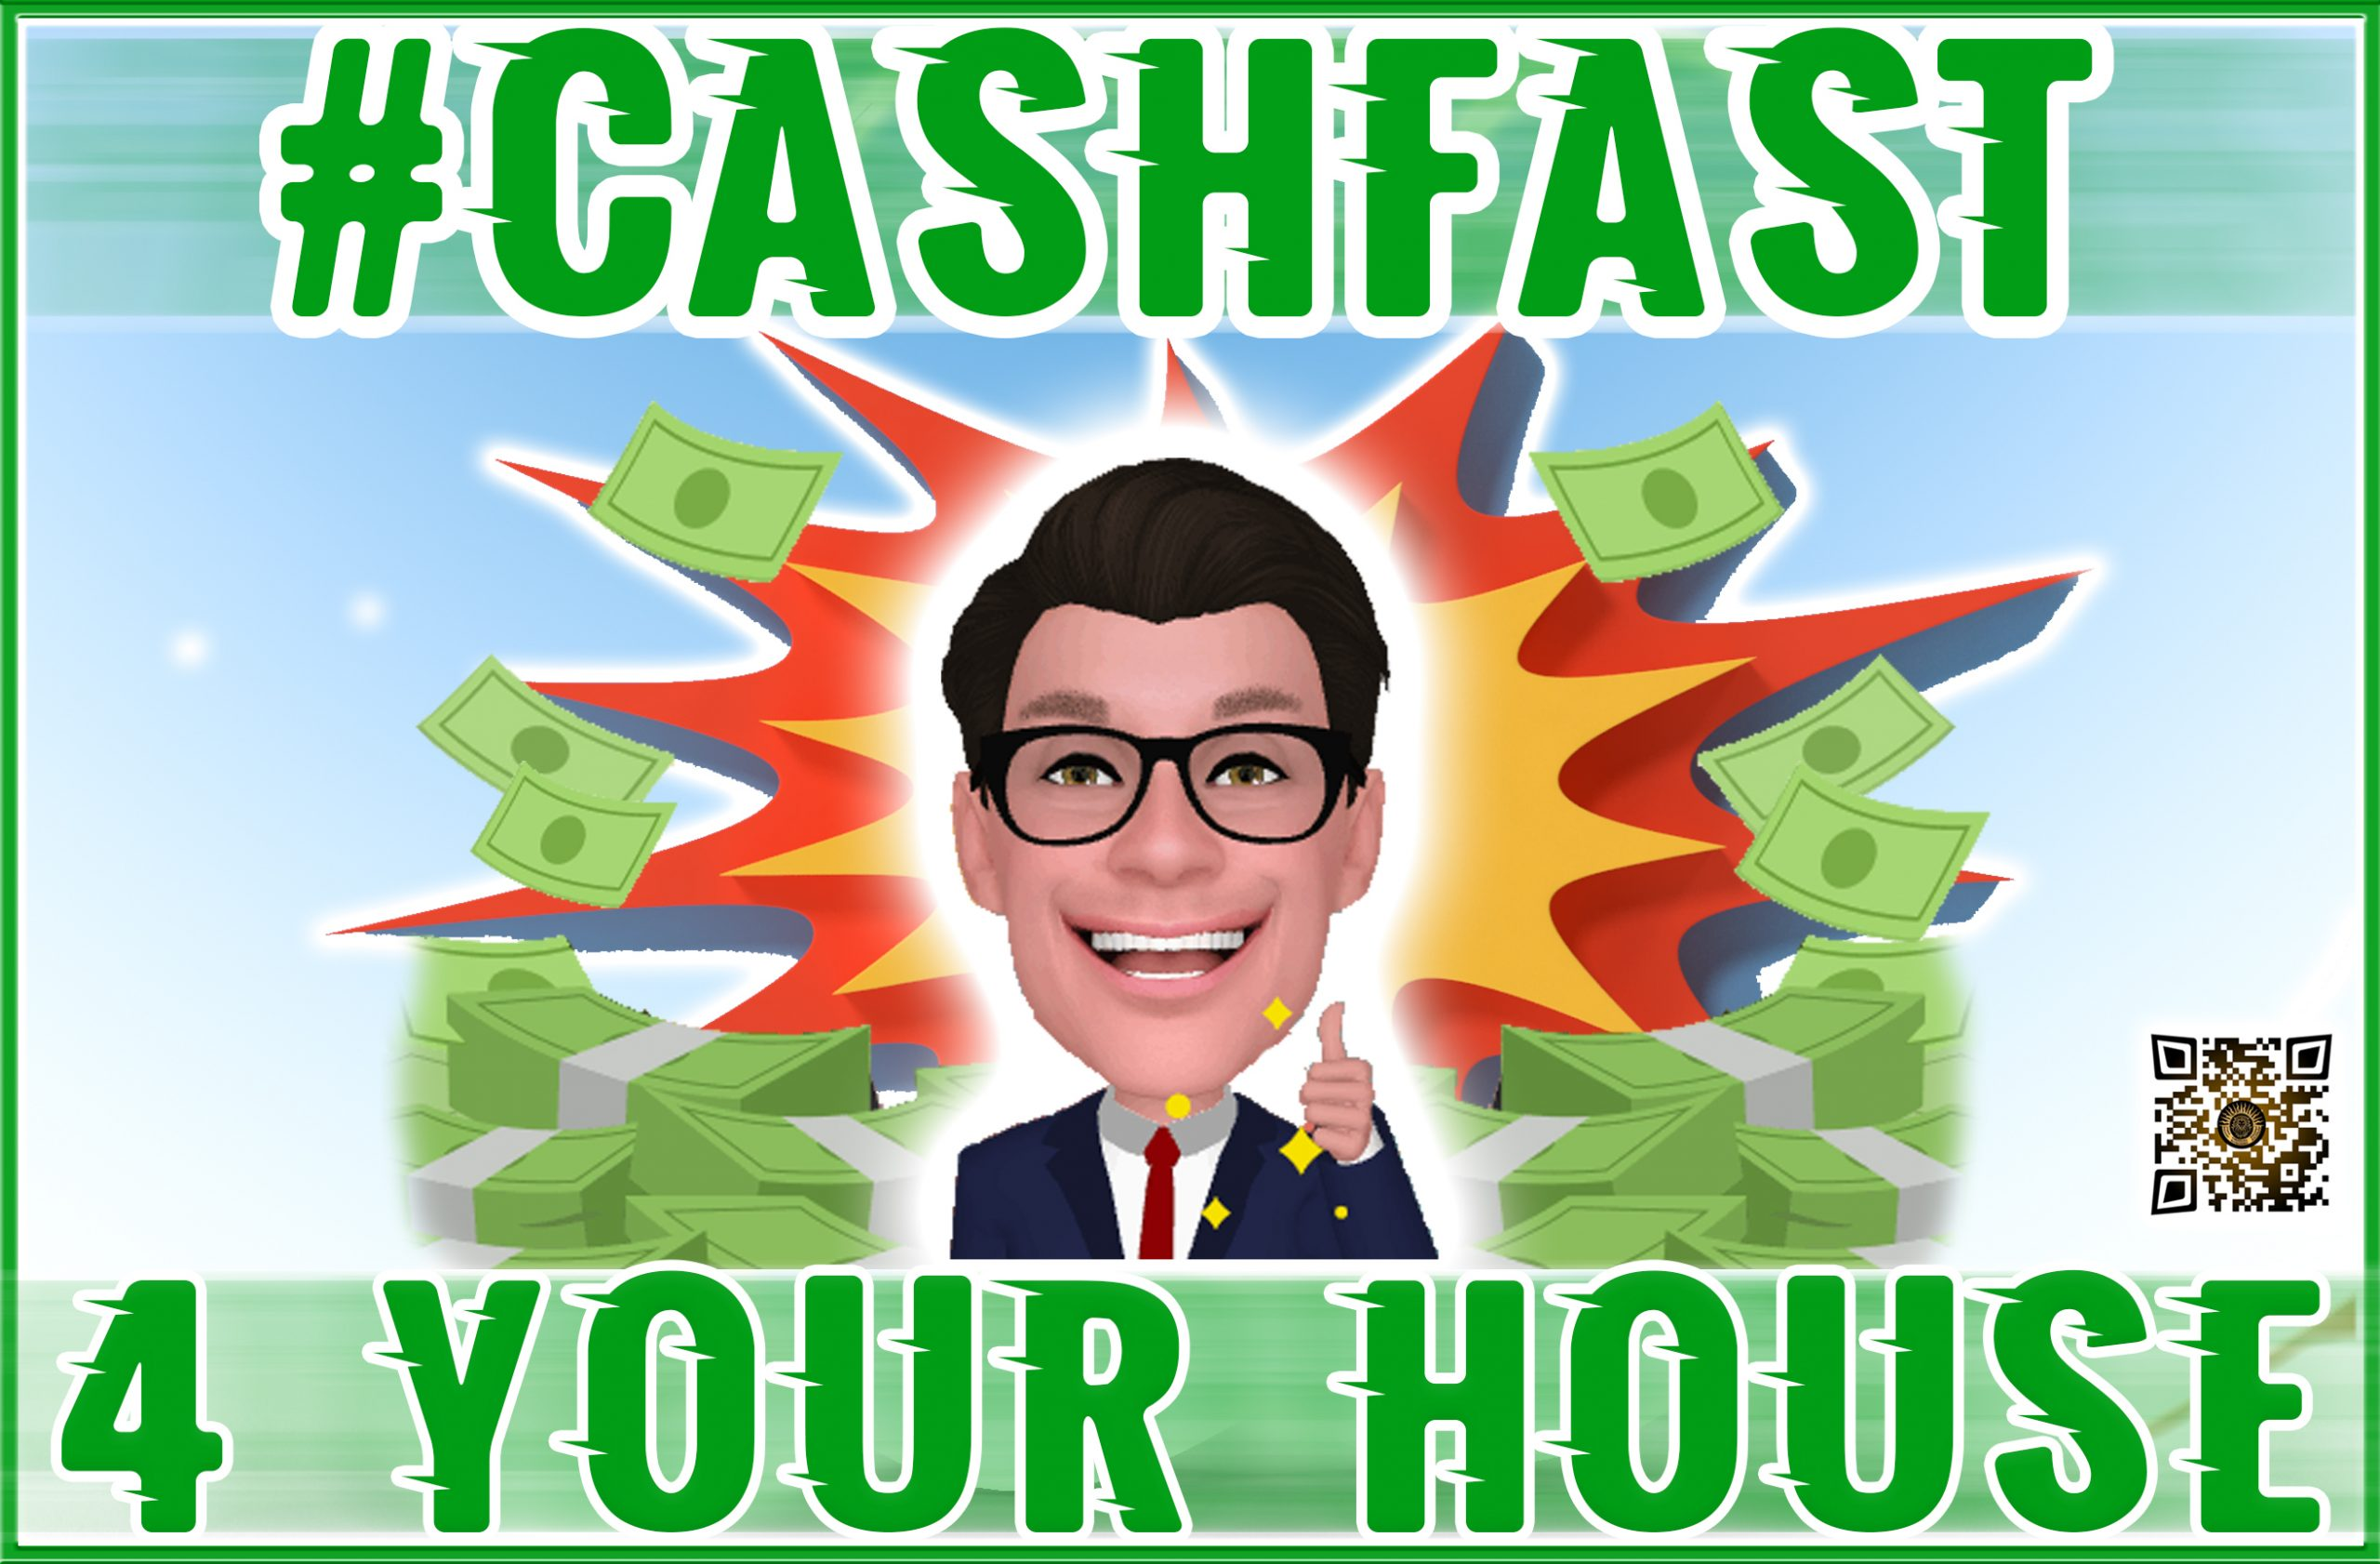 Fast Cash For Your House In Nassau Bay Texas